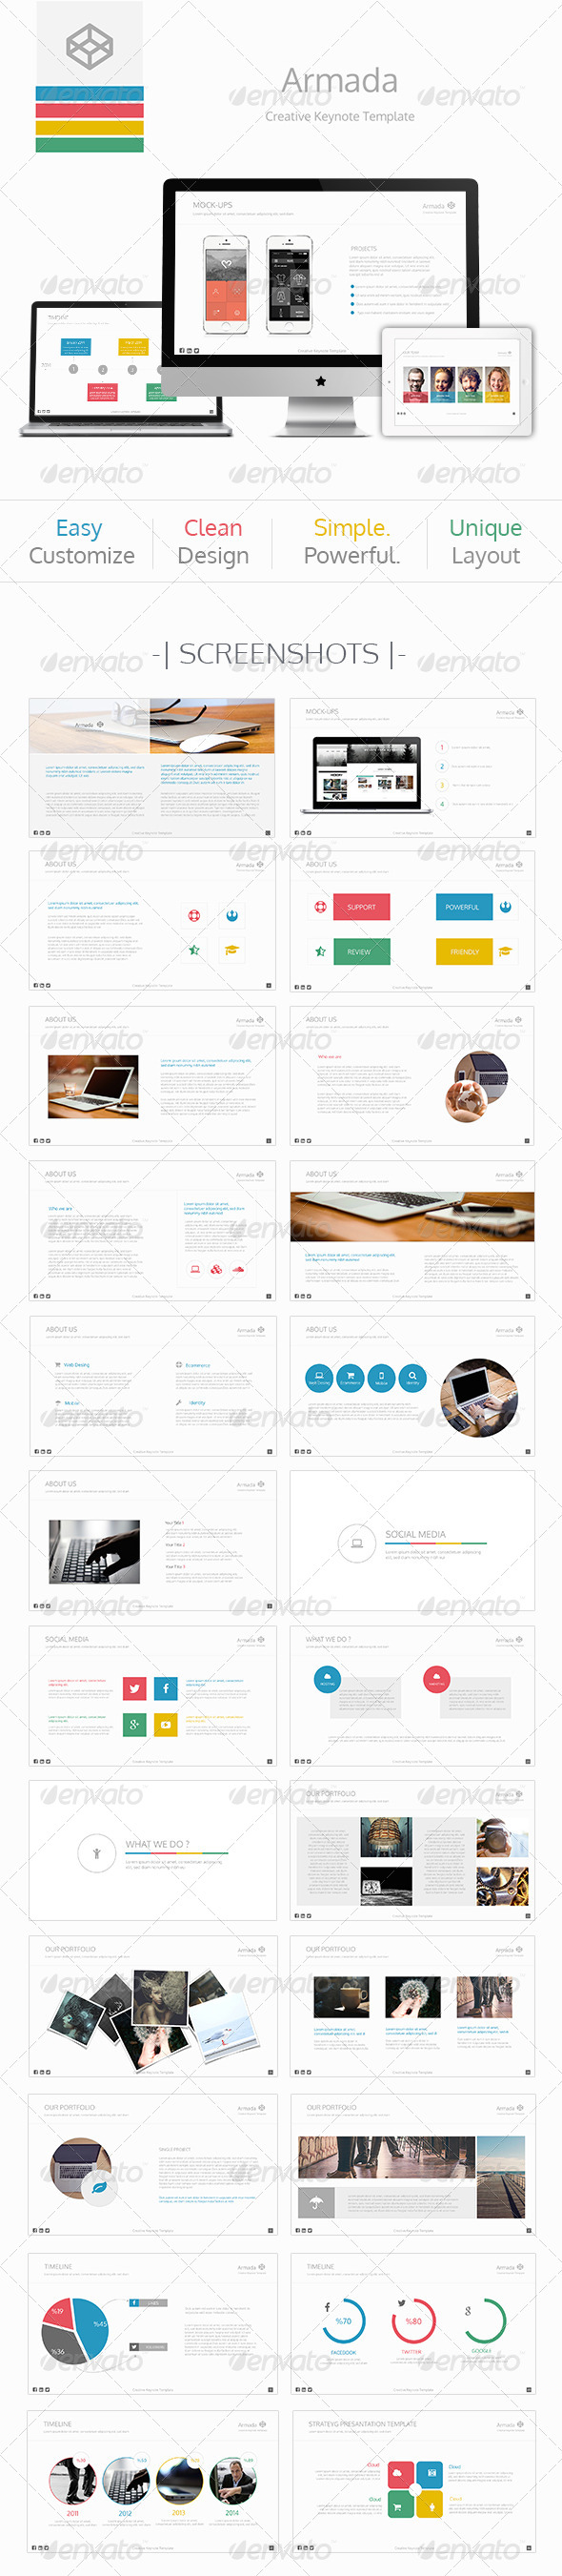 GraphicRiver Armada Keynote Template 7934235